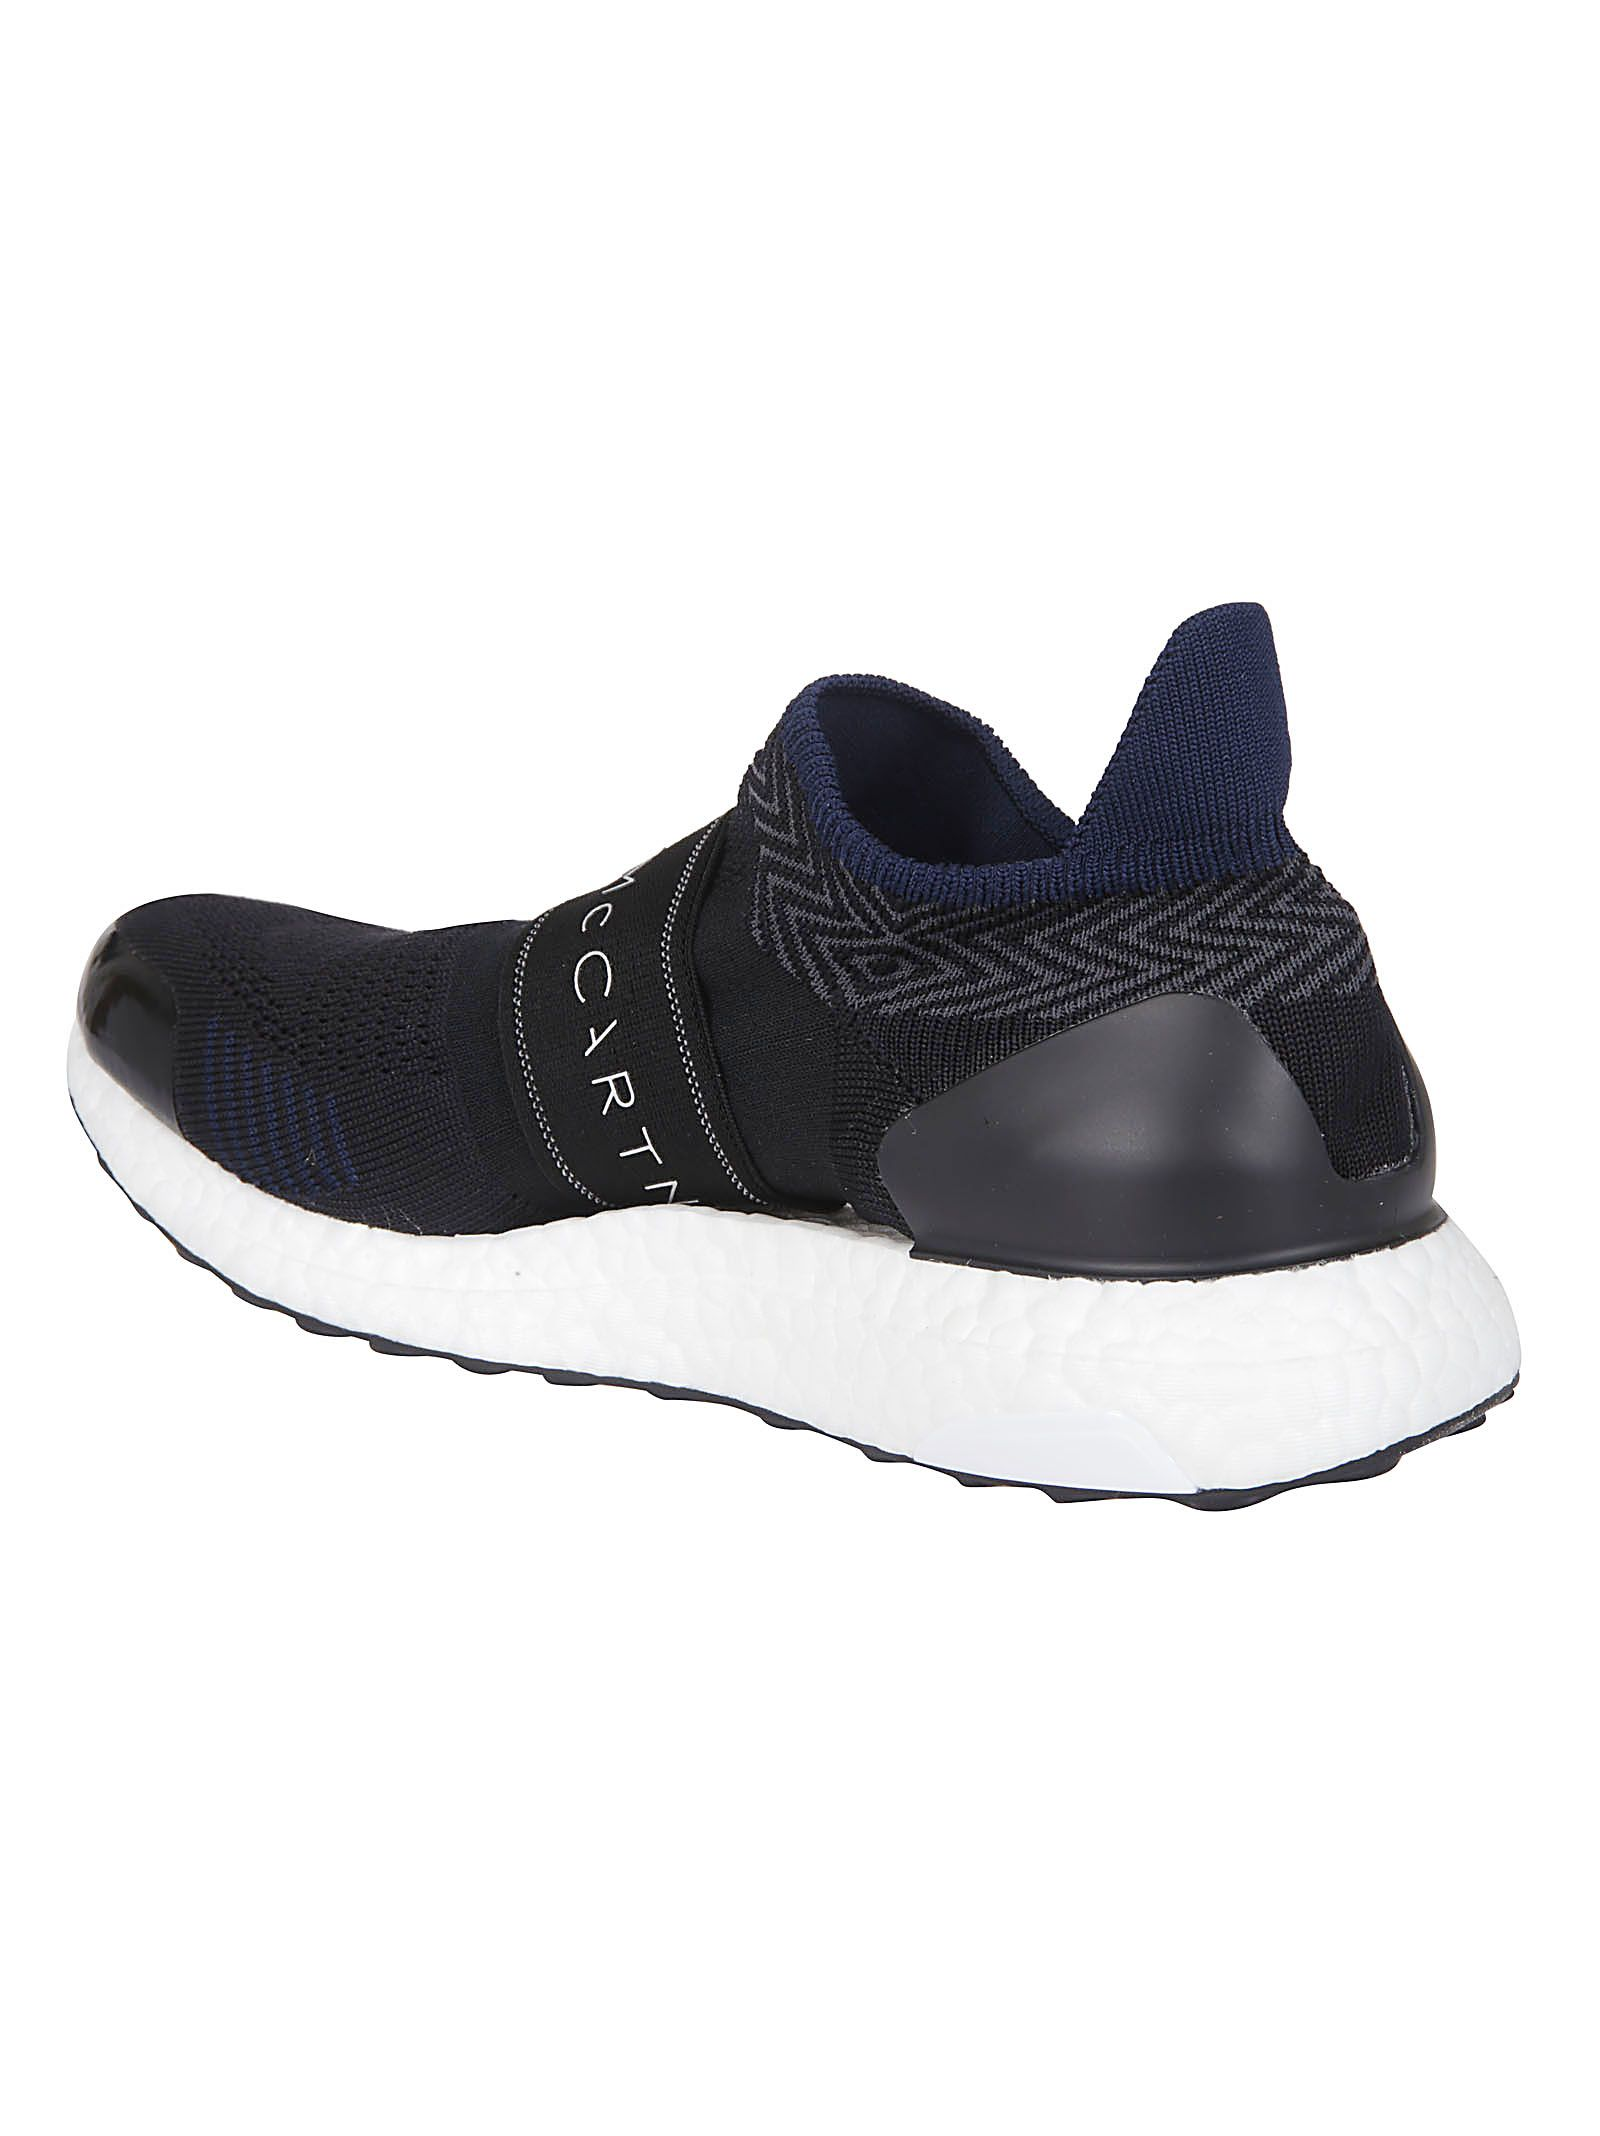 37dedc9e8b232 ... Adidas by Stella McCartney Ultraboost X 3d Slip On Sneakers - Black ...